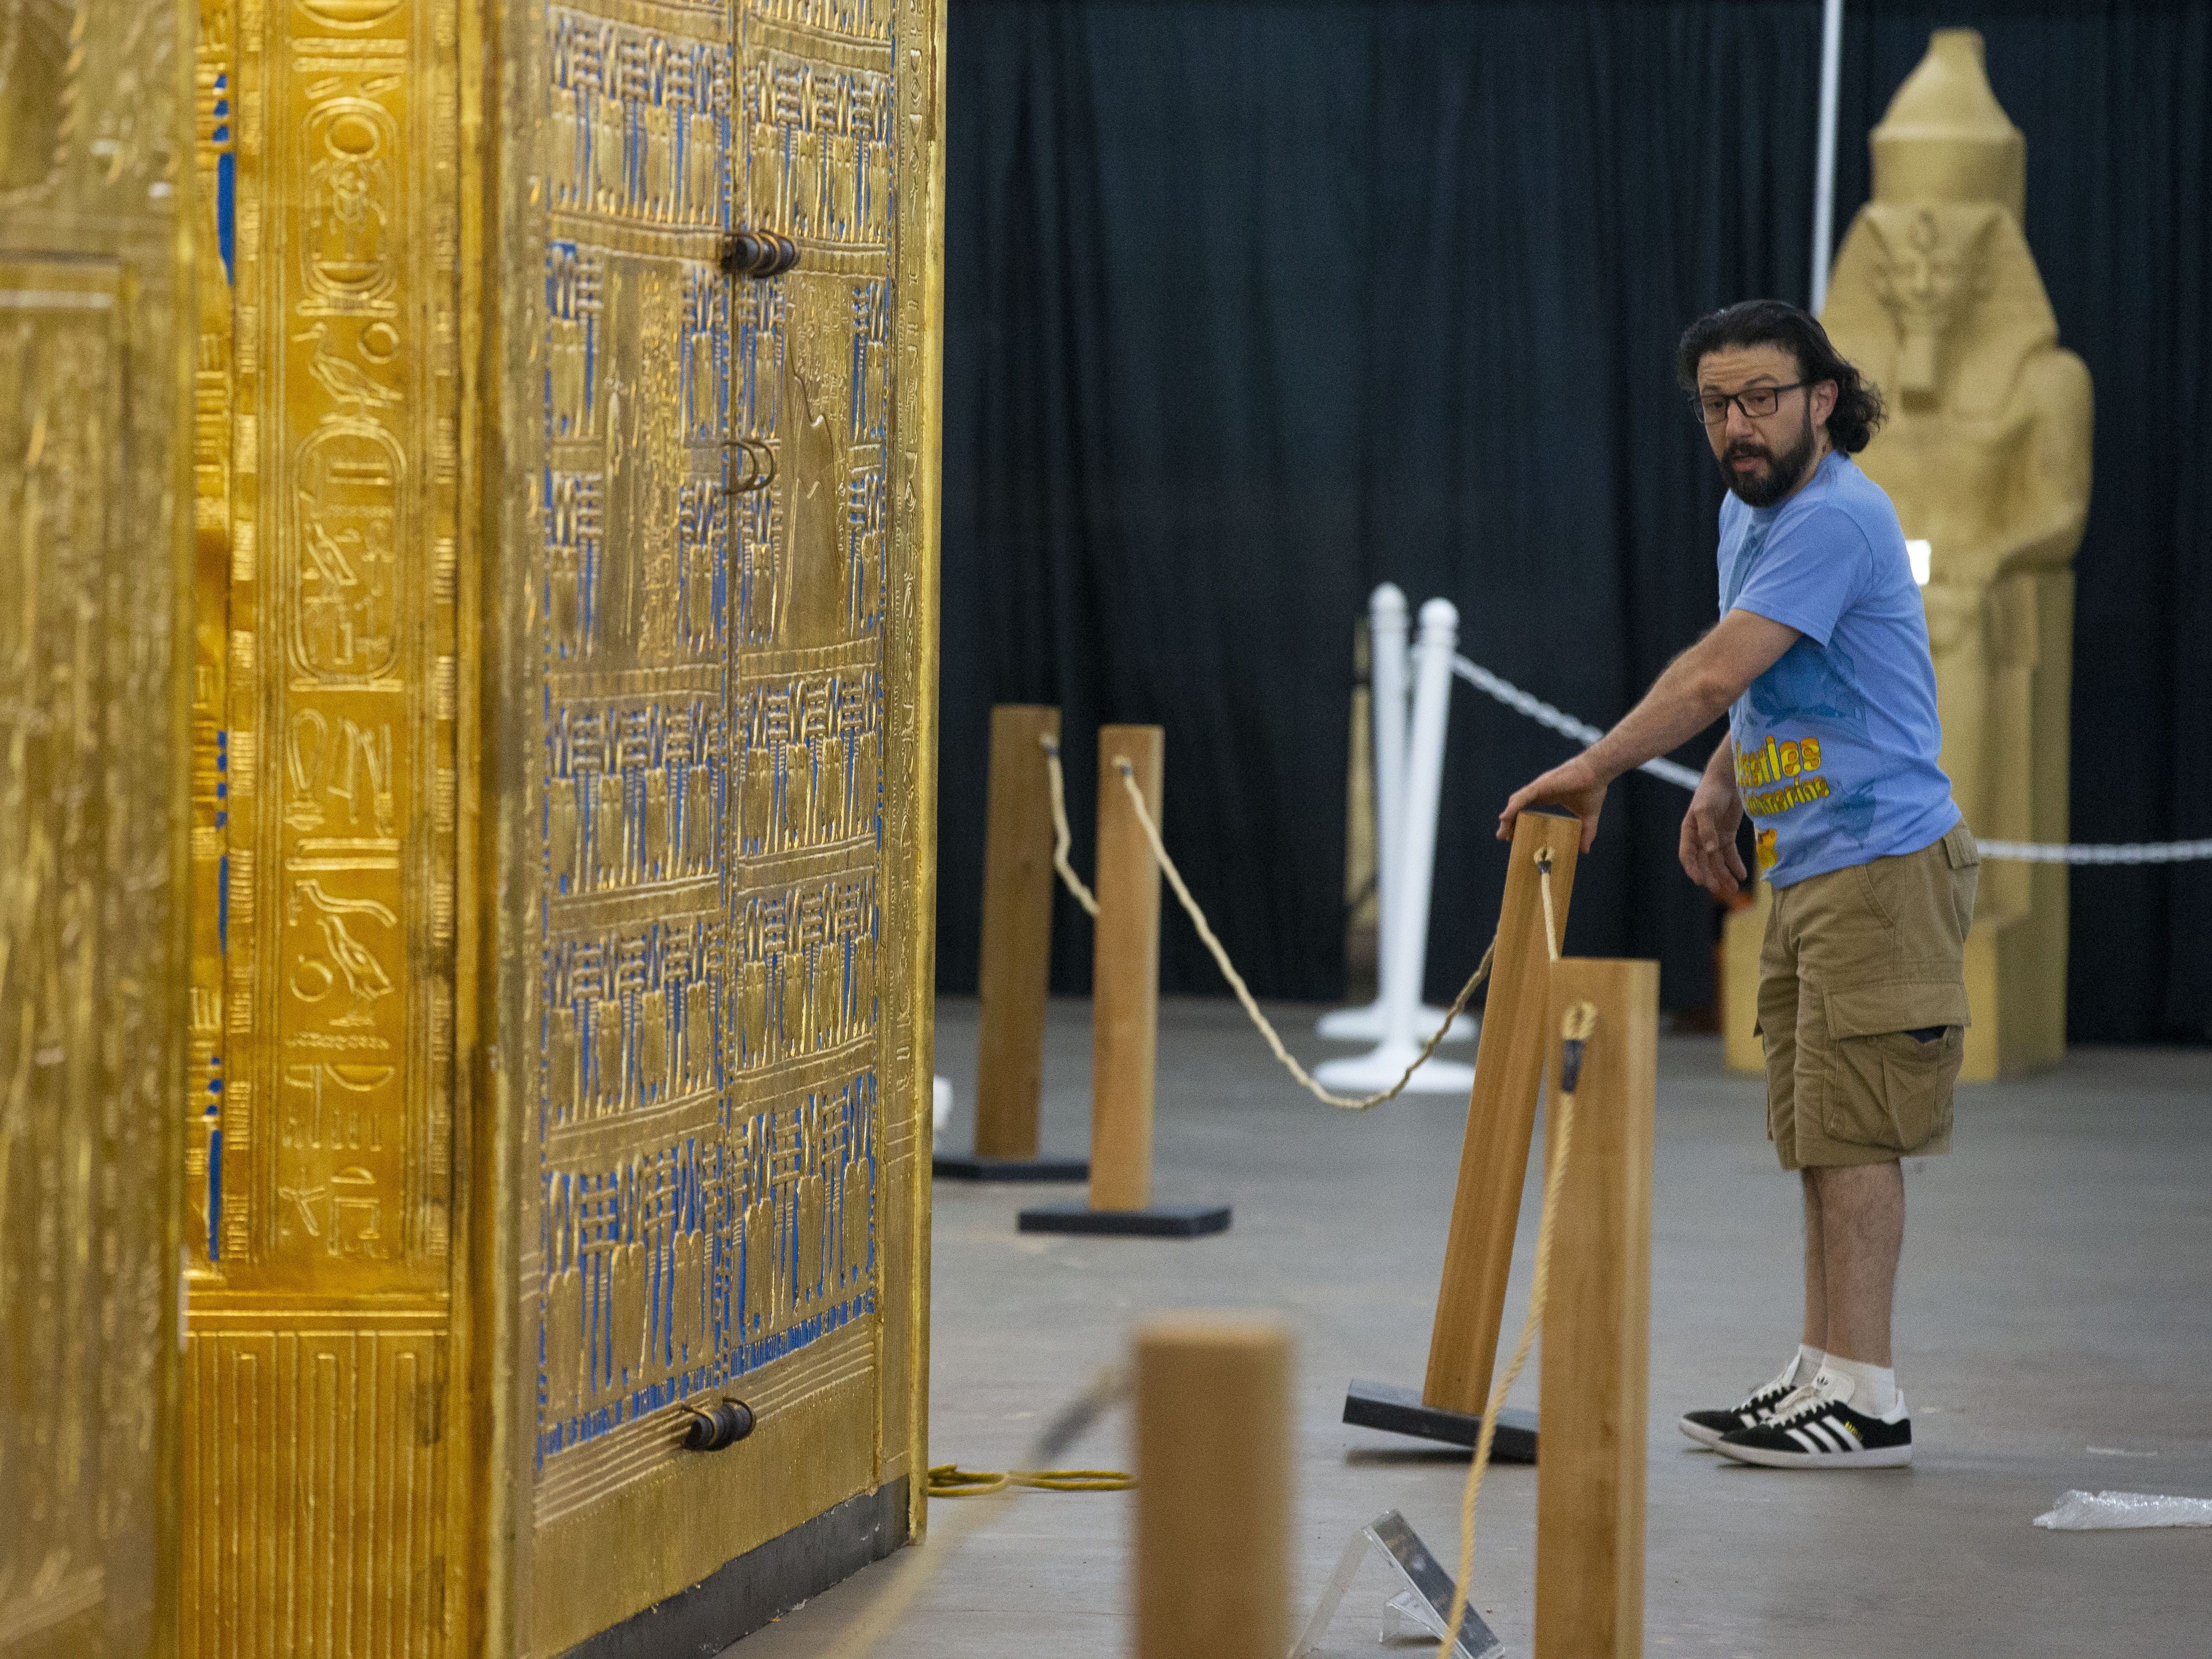 Mohammad Ragab helps set up the King Tut and the Egyptian Treasures exhibit at the Arizona State Fair in Phoenix. The Fair opens Friday, October 5.